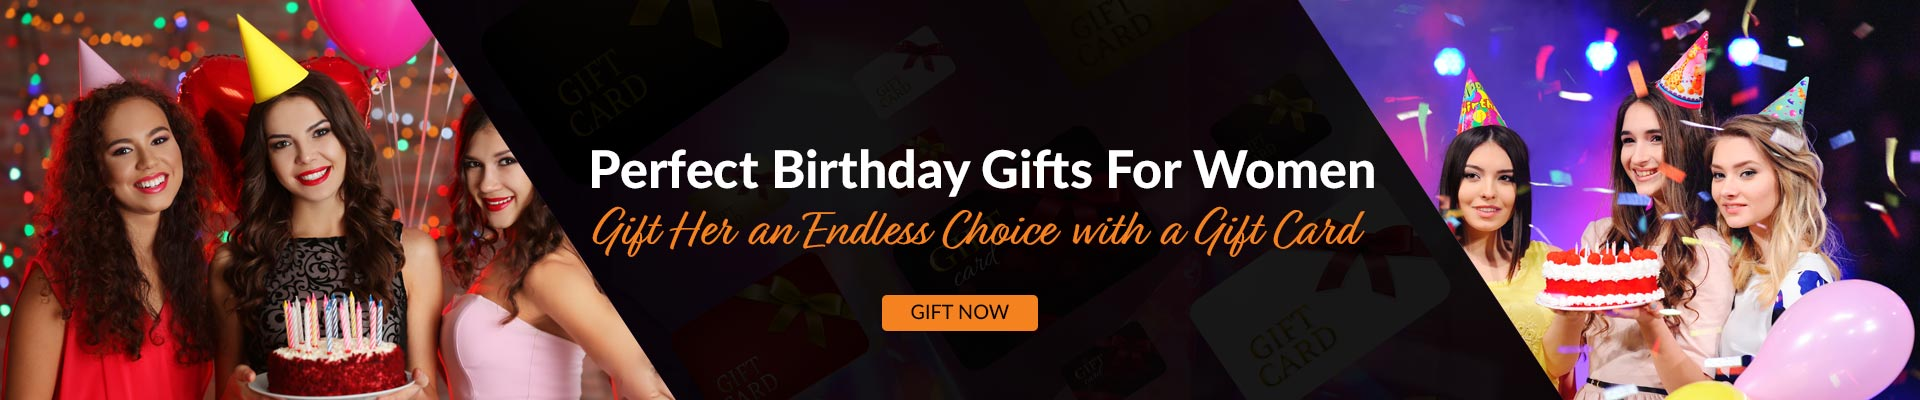 Birthday Gift Cards For Women Best Birthday Gifts For Her Woohoo In